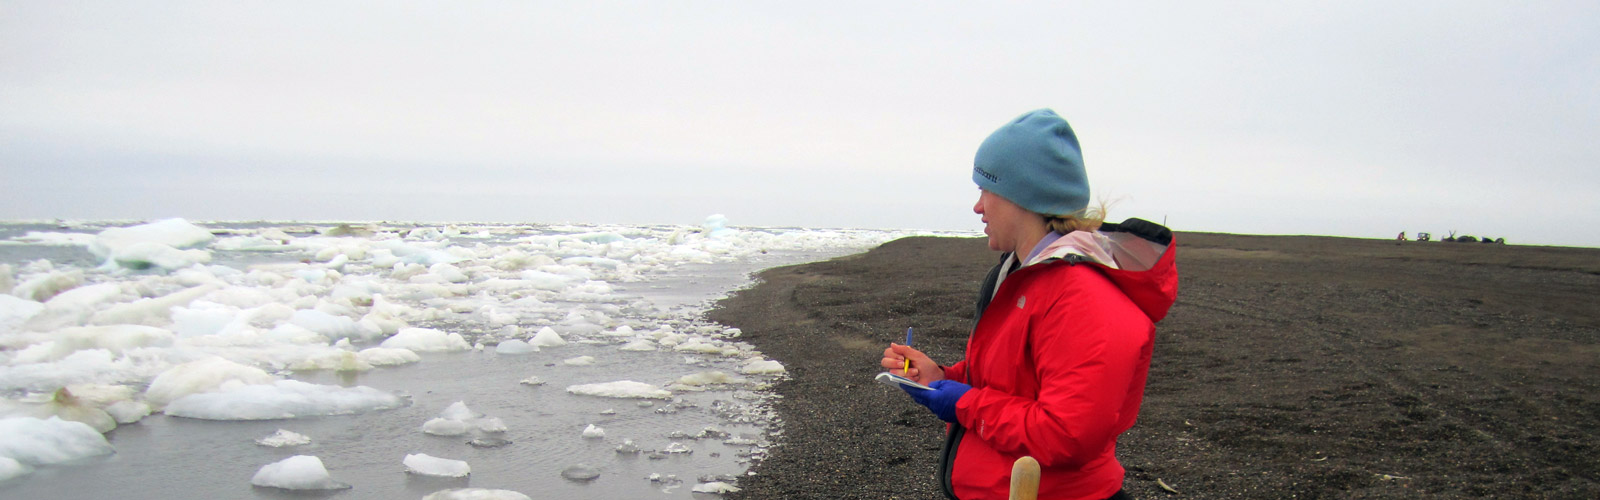 Graduate student observing ice along a shore.